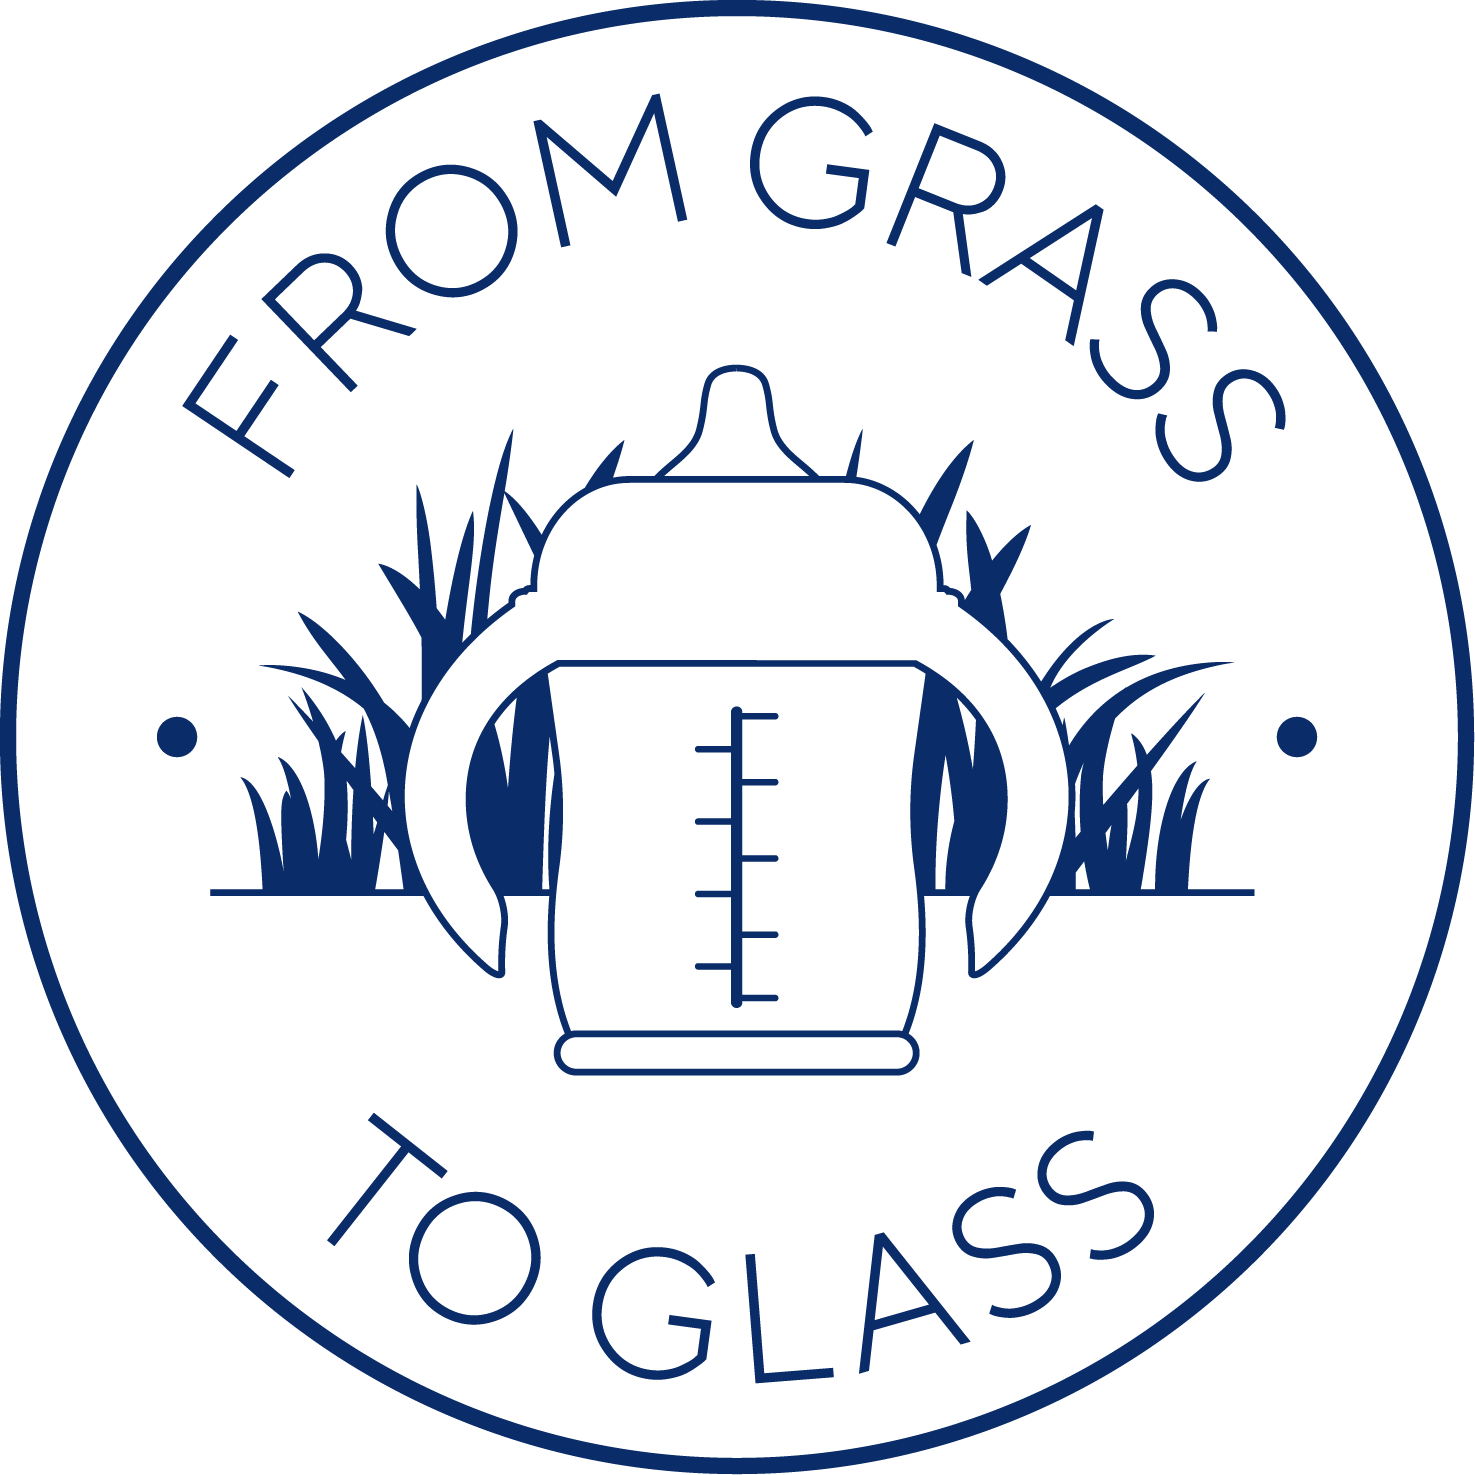 From grass to glass